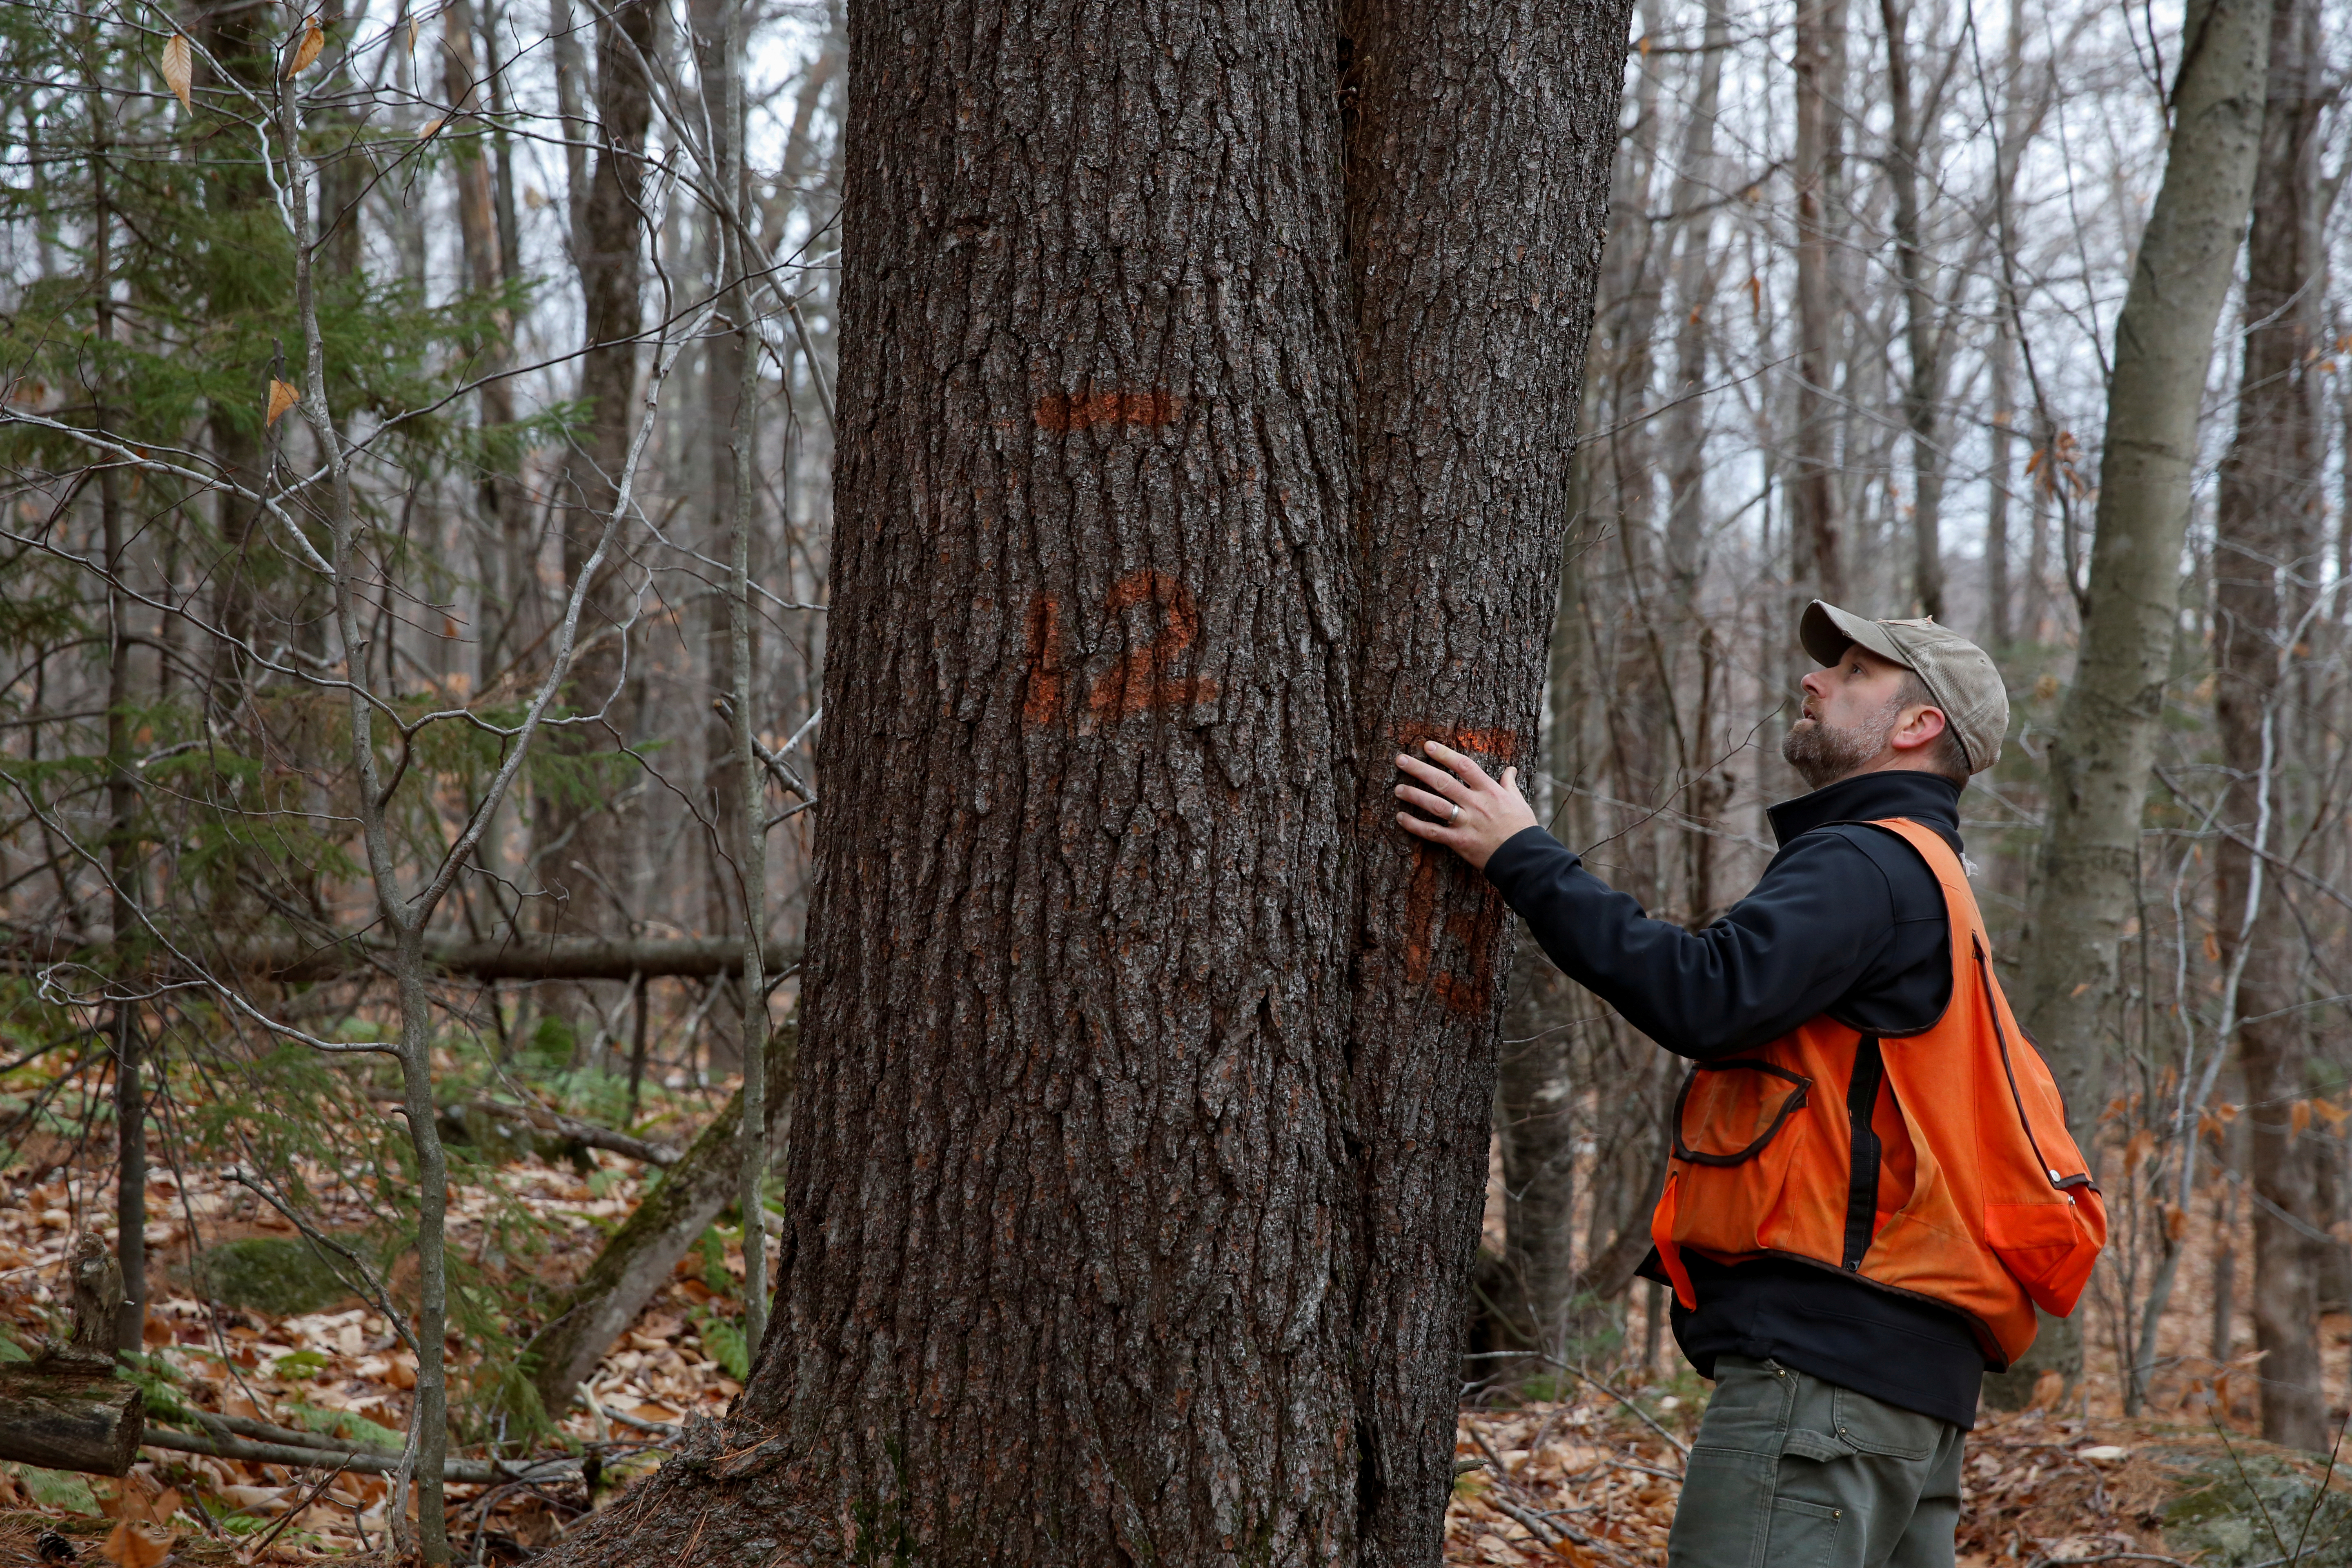 Chris Pryor, director of forest stewardship at New England Forestry Foundation, looks at marked trees in the Hersey Mountain Wilderness in New Hampton, New Hampshire, U.S., December 4, 2020. REUTERS/Elizabeth Frantz